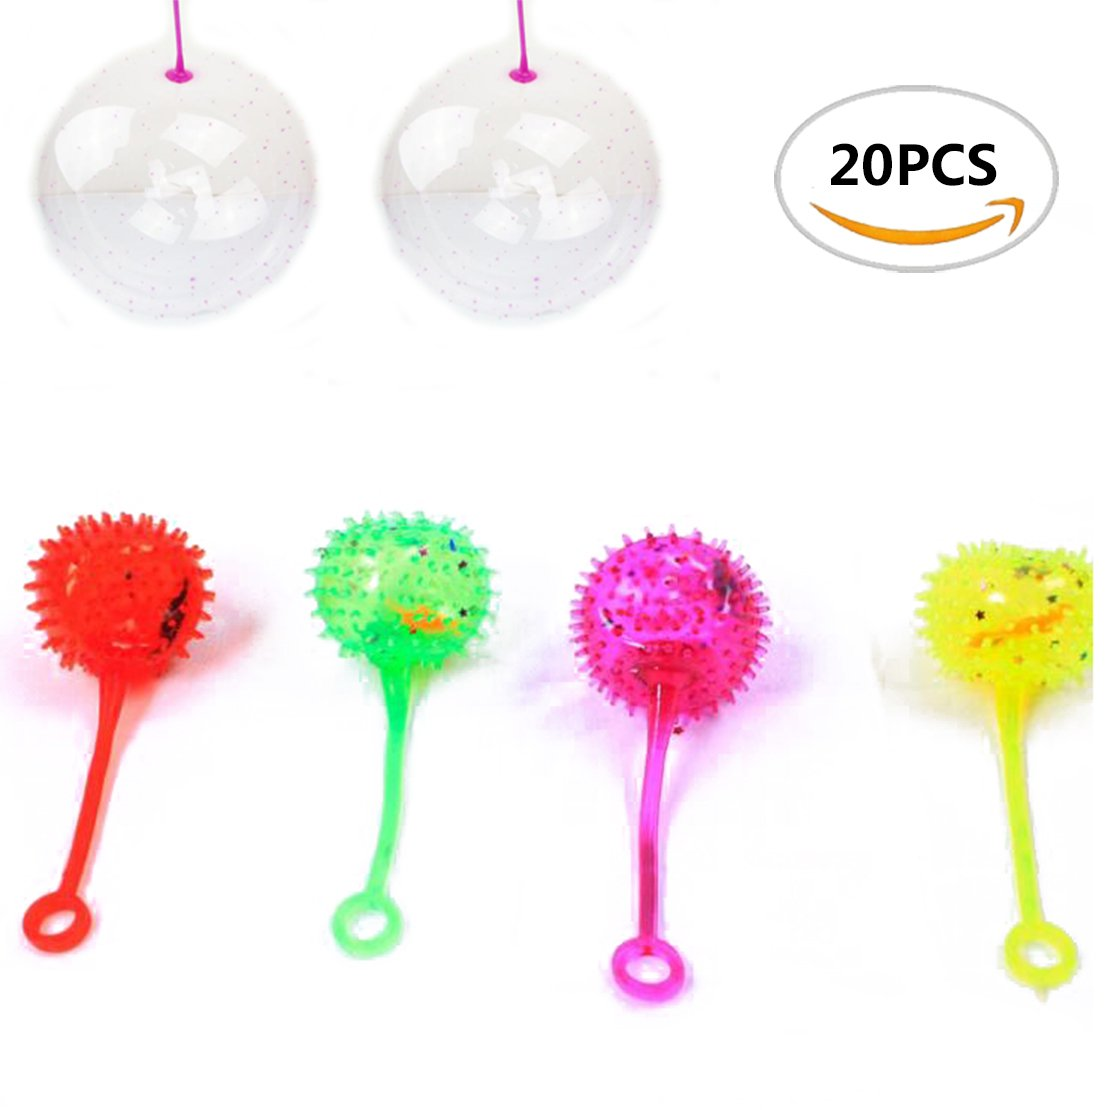 20pcs Sc0nni Funny Toy Rubber Balls,For Student,Children's Party And So on(5 styles)